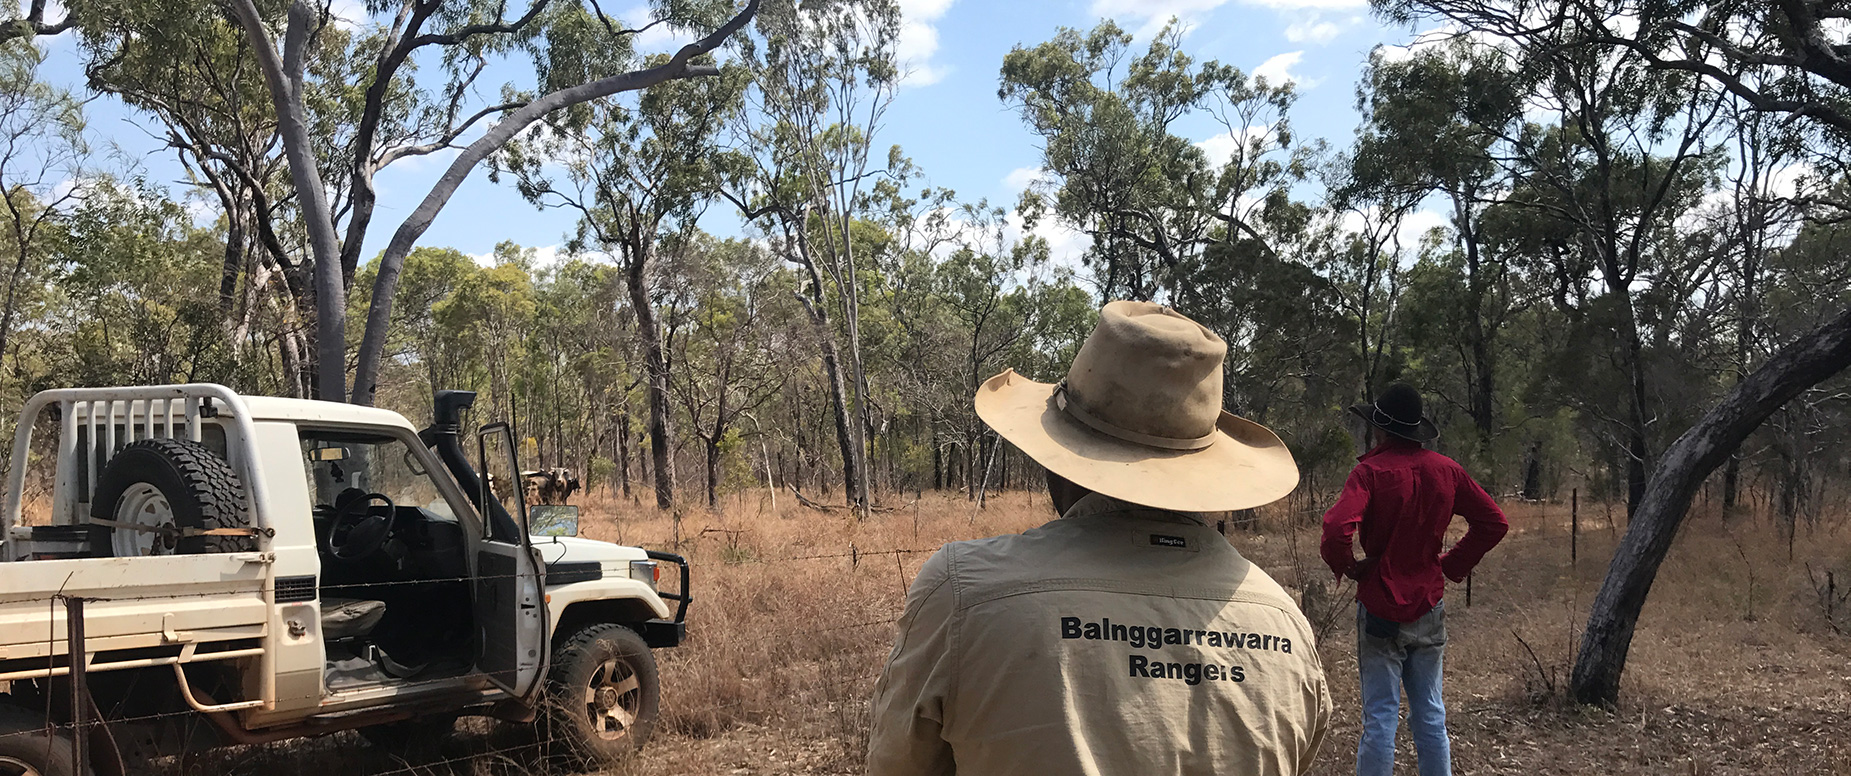 Balnggarrawarra Rangers working on Normanby Station to improve land condition and water quality